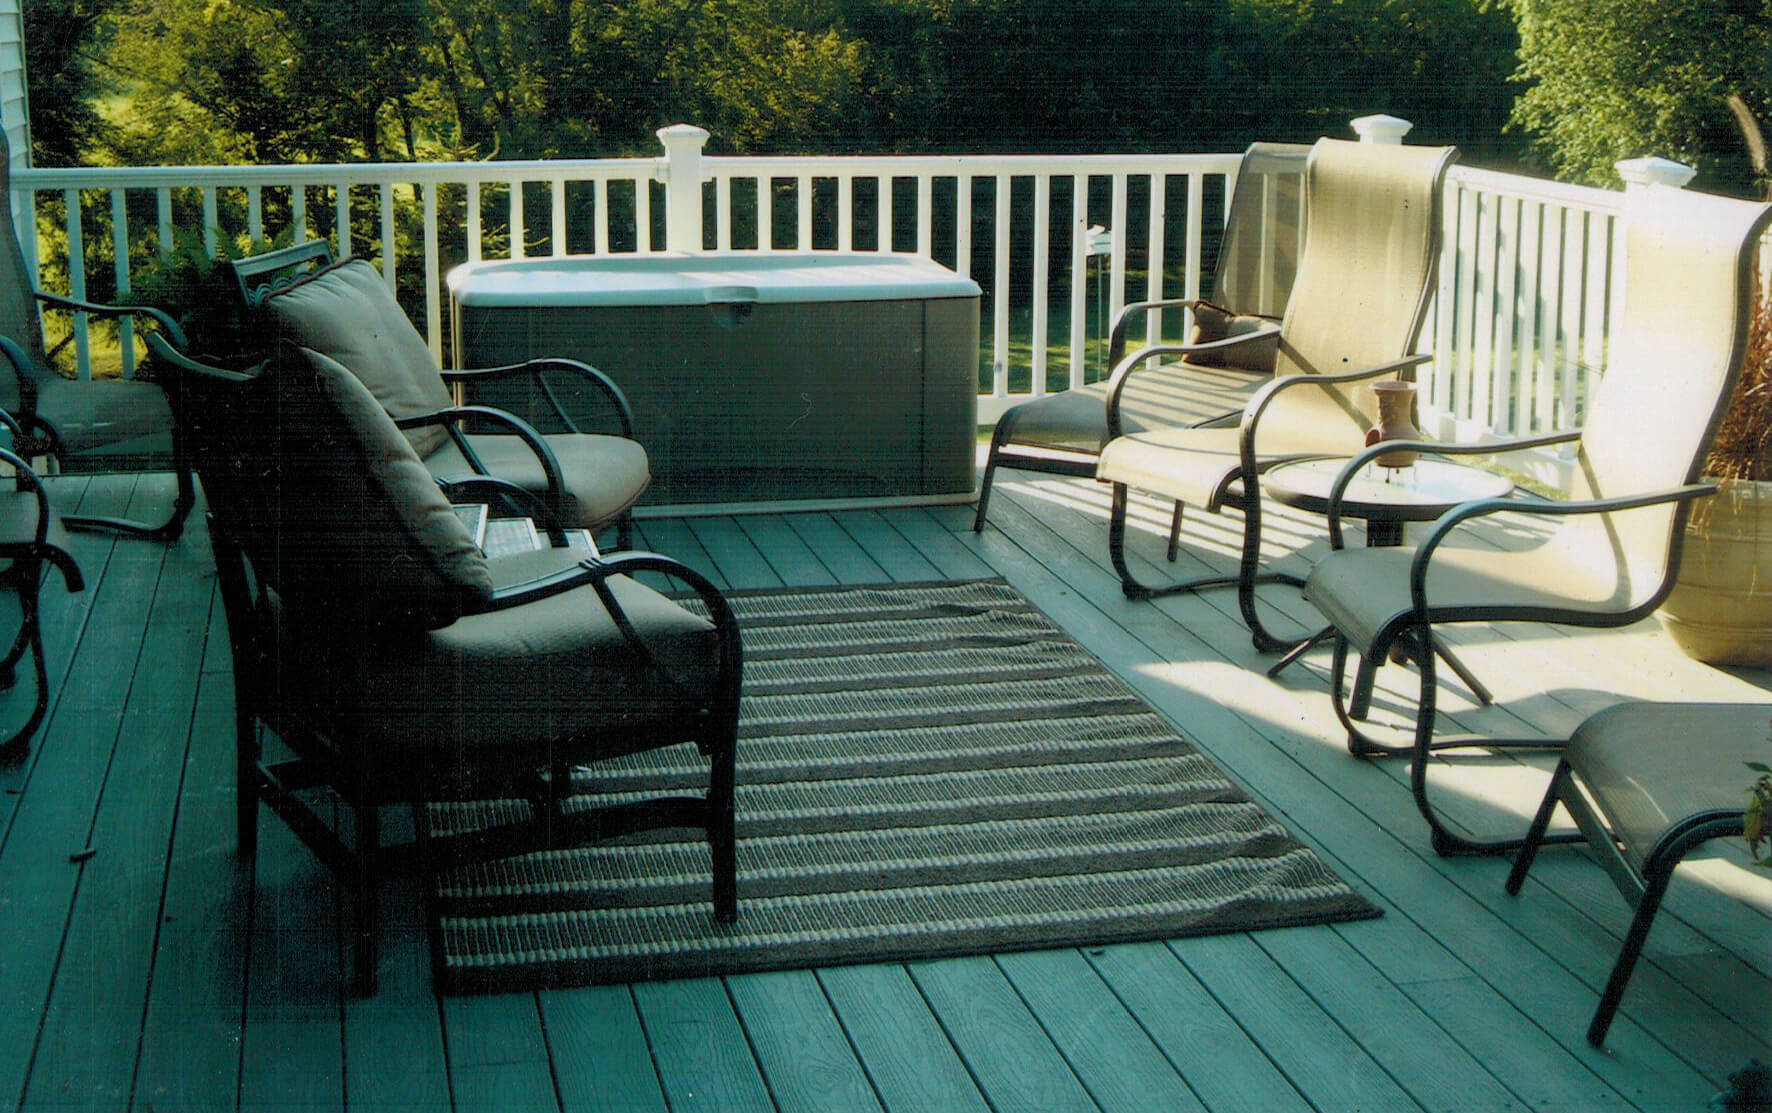 carroll county,md deck builder g